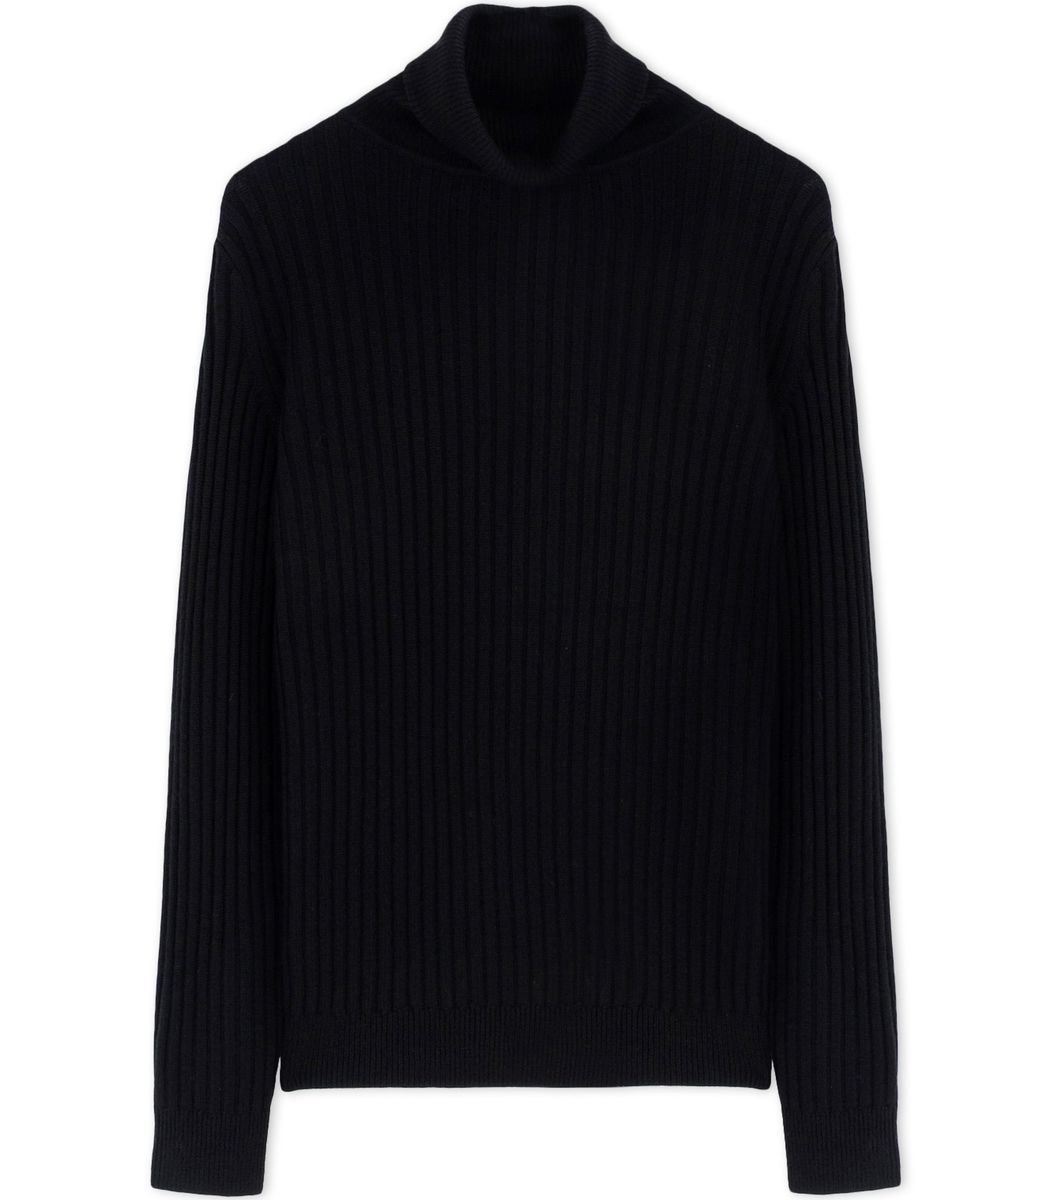 A.P.C. Madelaine Turtleneck Sweater